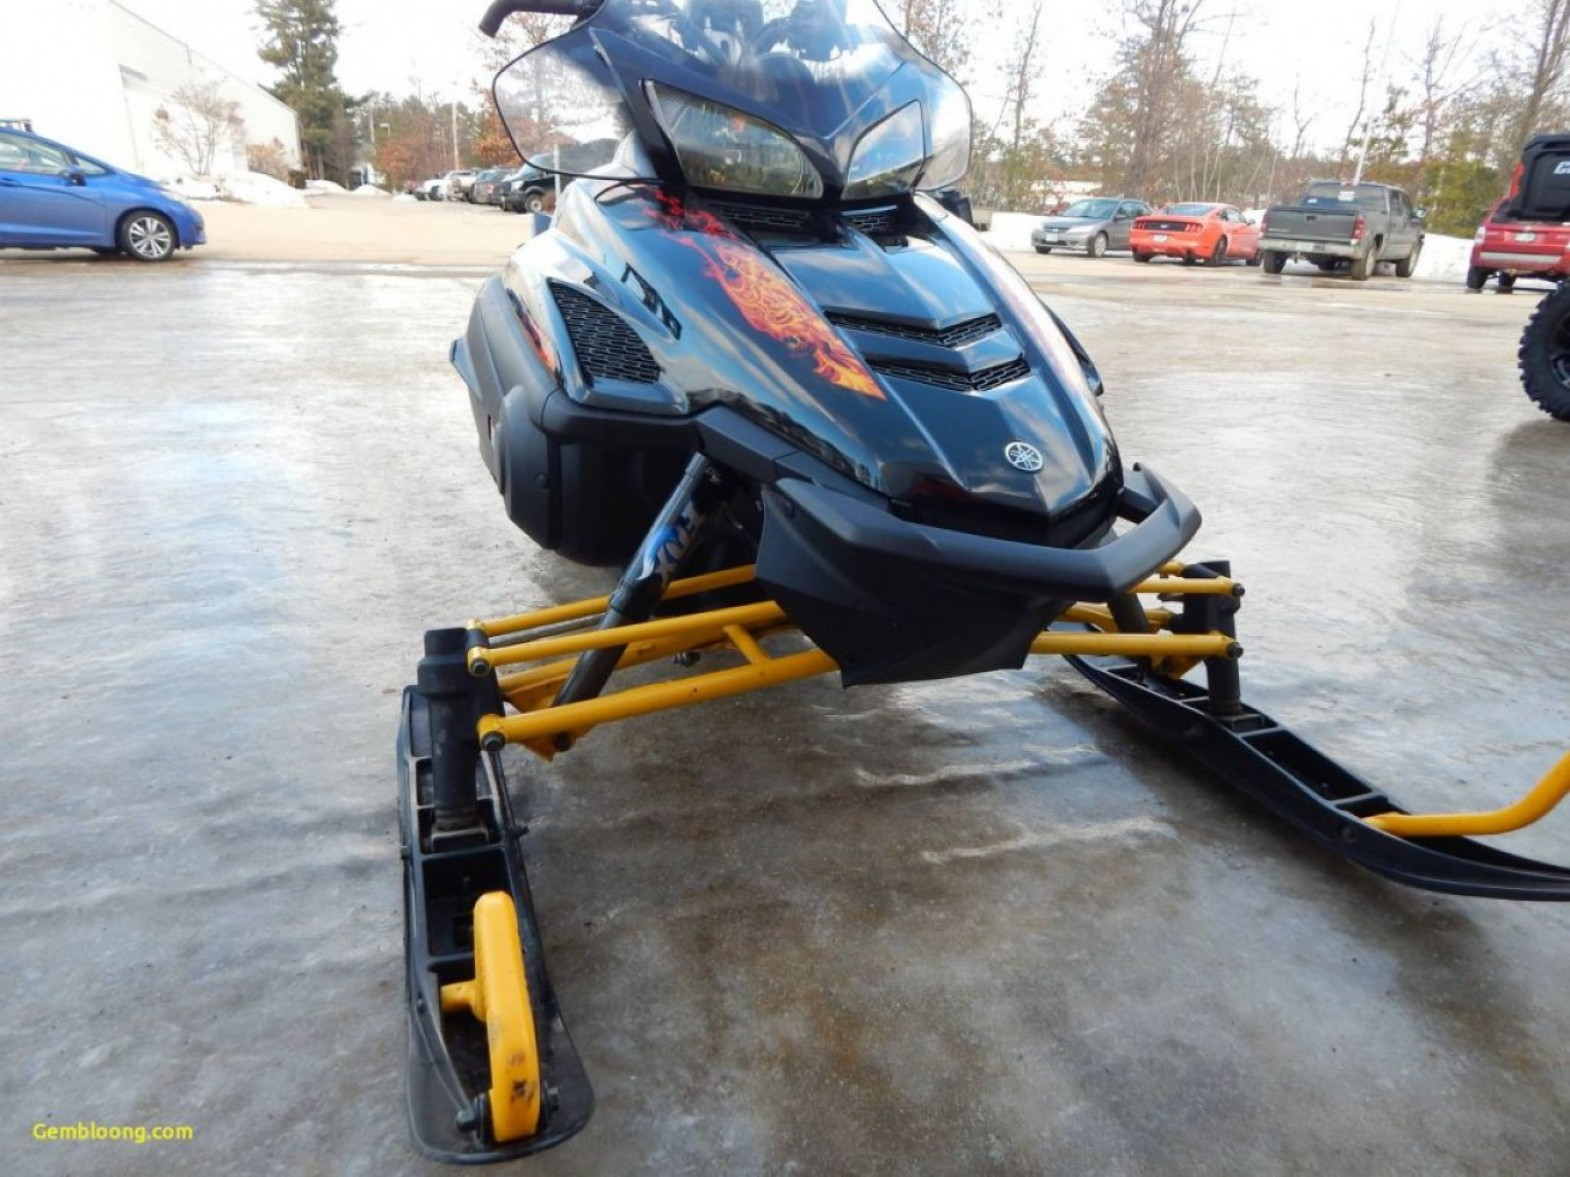 RS Vector LTX: Craigslist Snowmobile Parts Awesome Used Snowmobile Sites Lovely New Yamaha Rs Vector Ltx Gt Snowmobiles